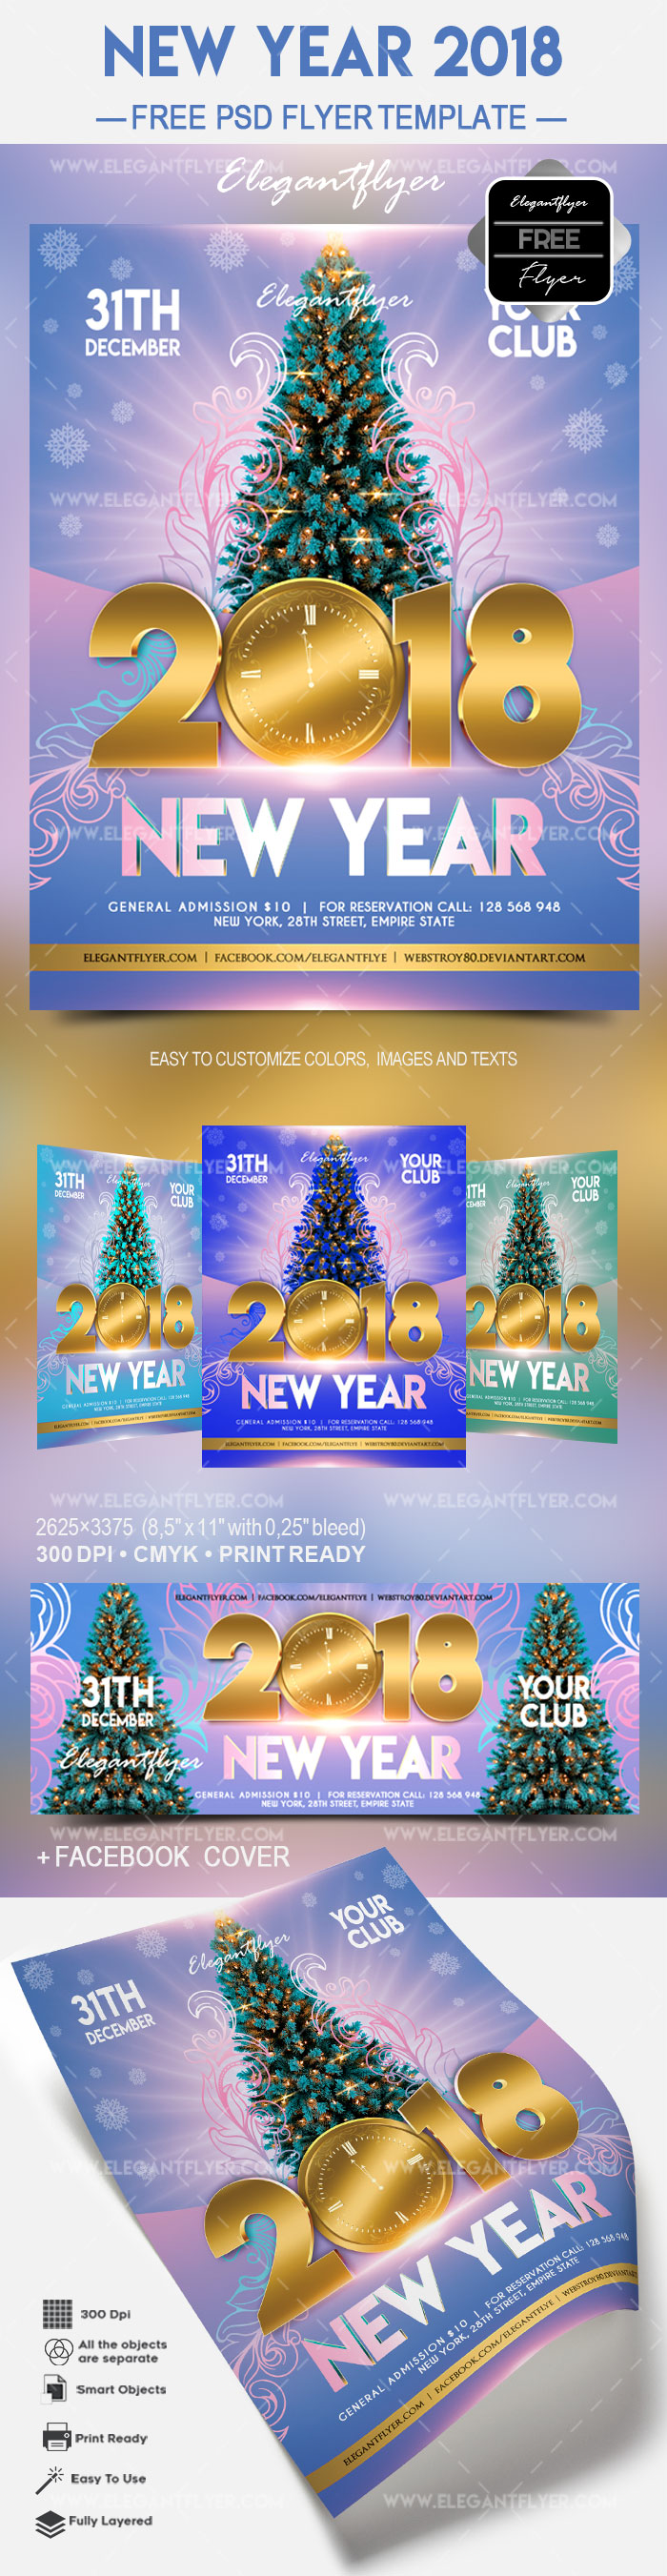 Free New Year 2018 – Flyer PSD Template